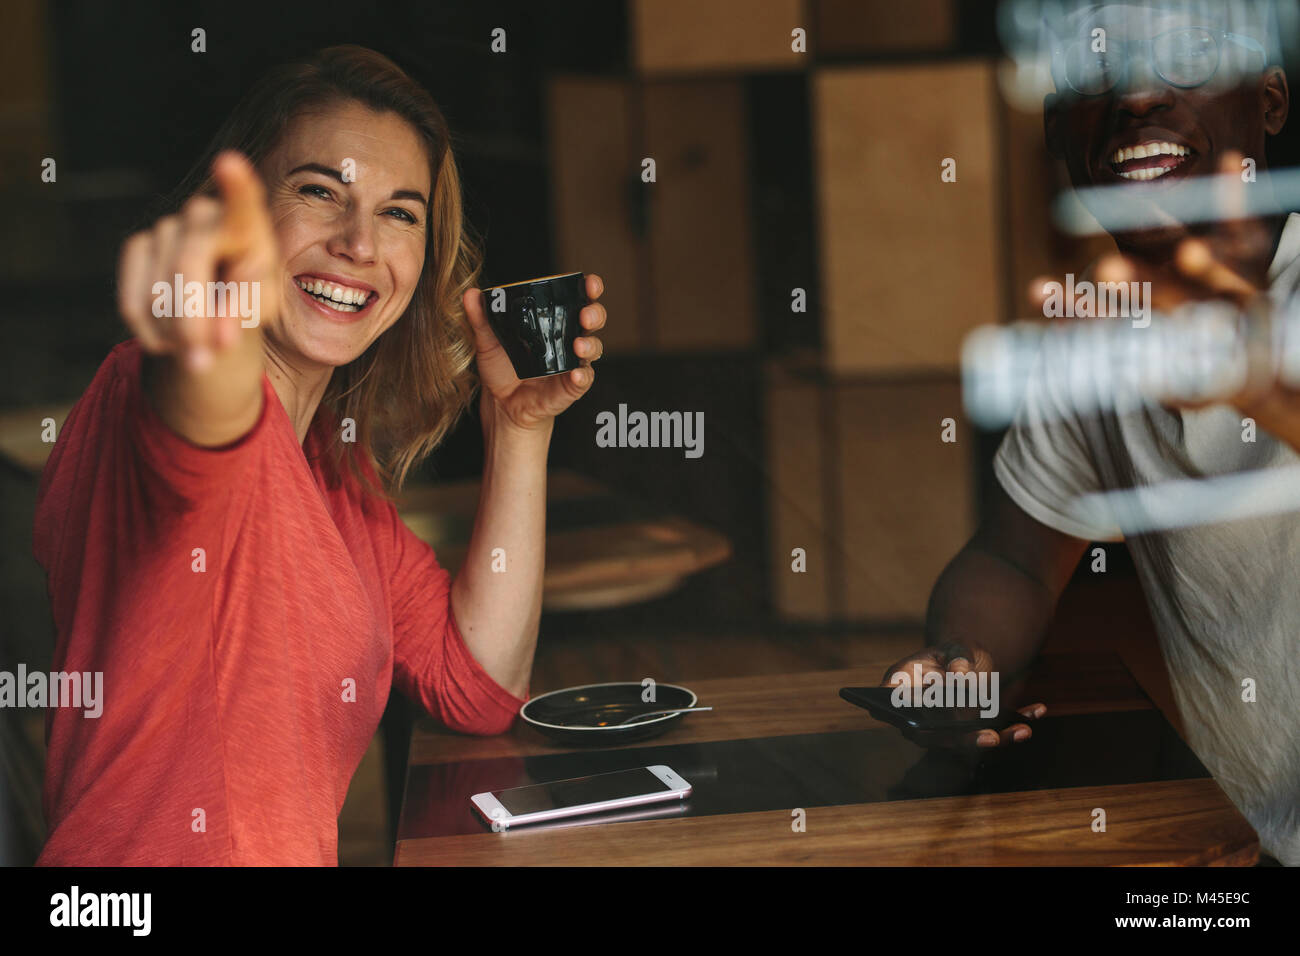 Smiling woman pointing at something sitting at a coffee table holding a coffee cup. Smiling woman sitting with her - Stock Image